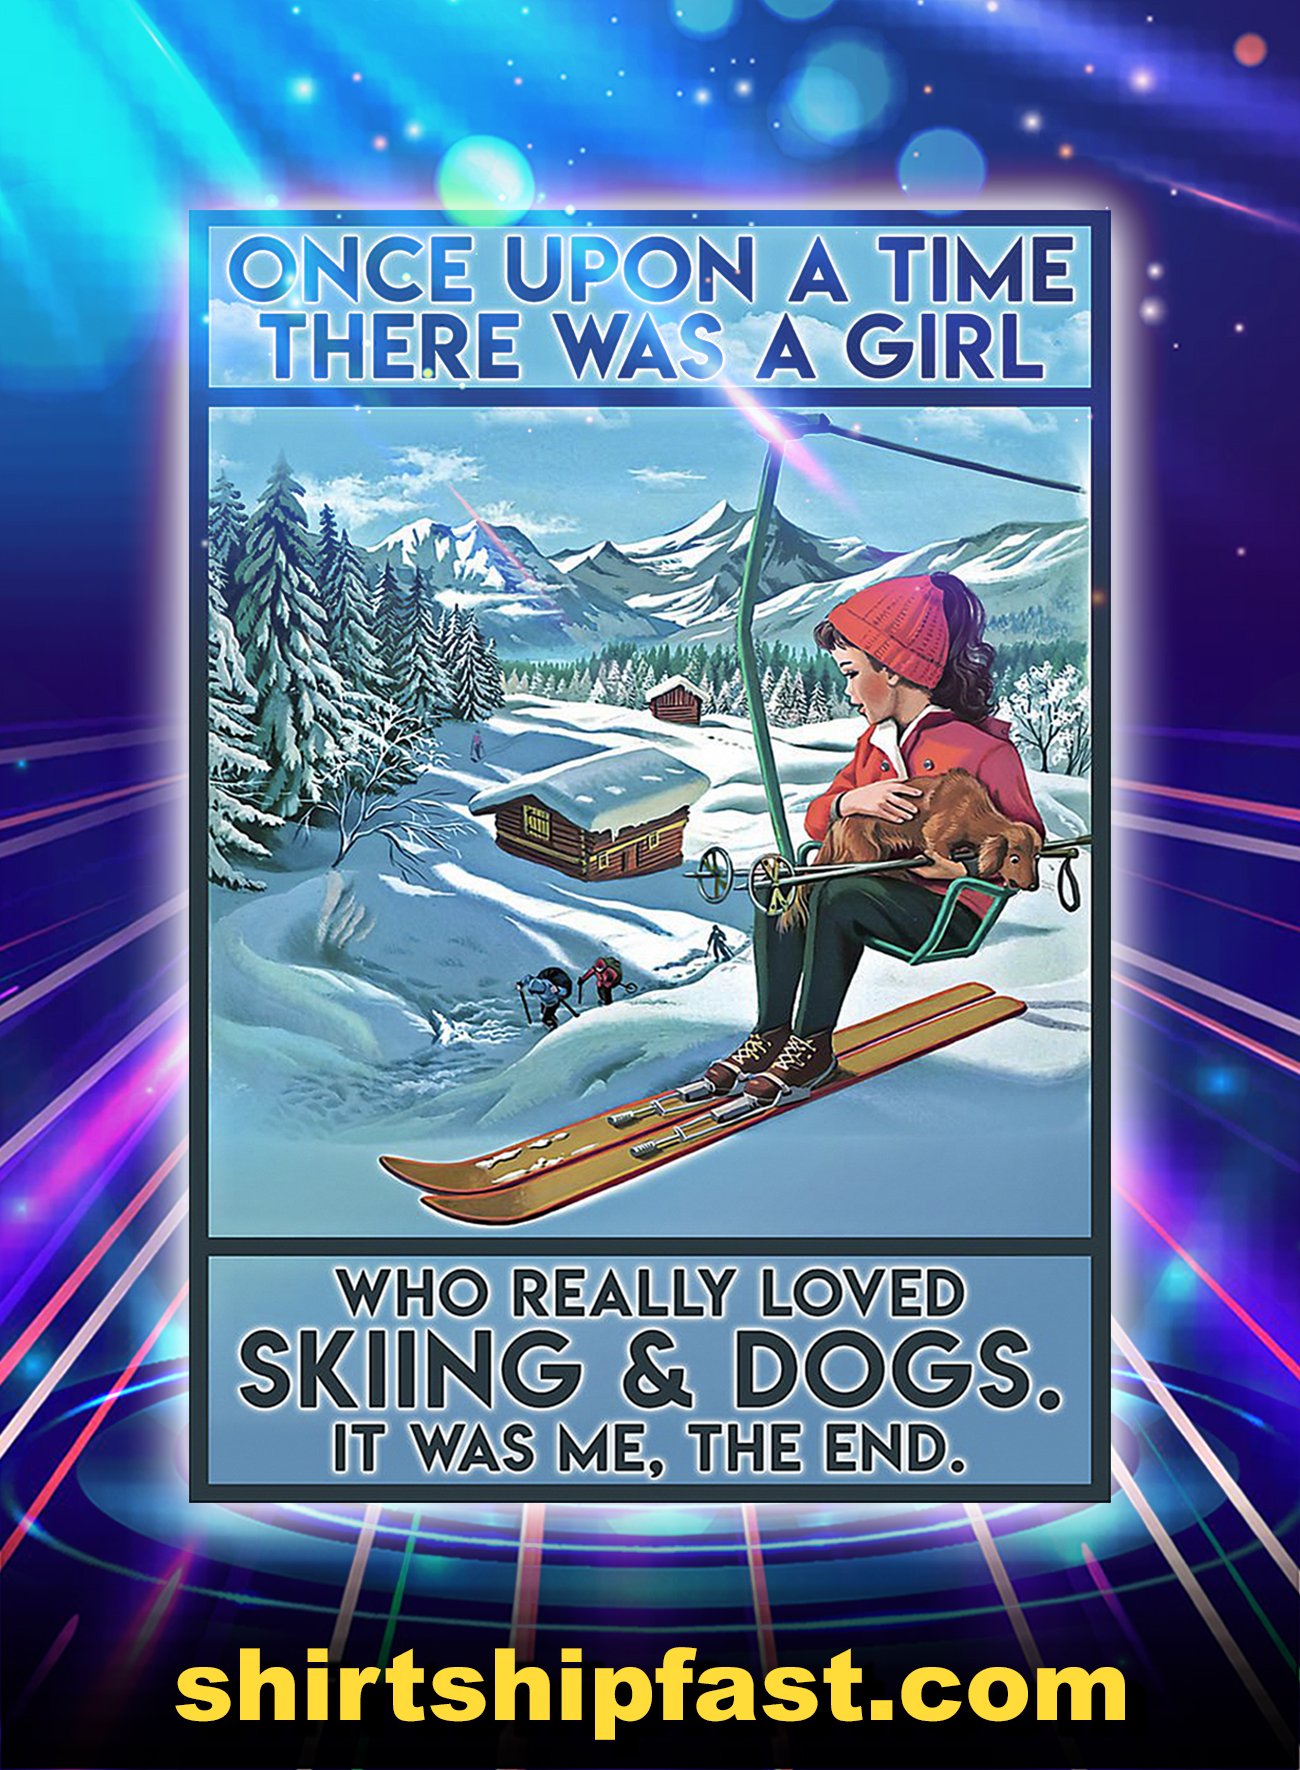 ONCE UPON A TIME THERE WAS A GIRL WHO REALLY LOVED SKIING AND DOGS POSTER - A1